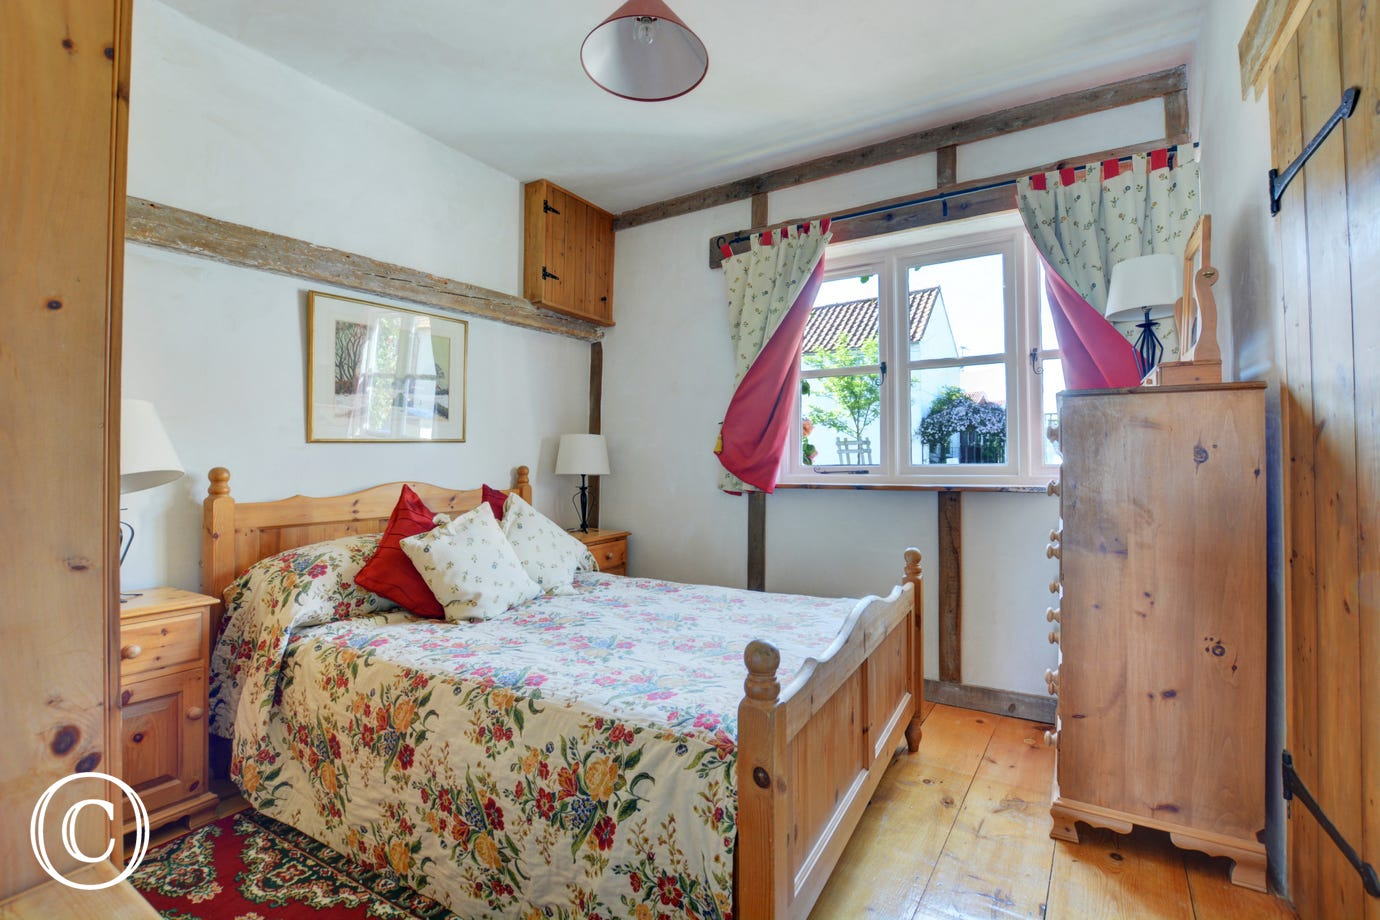 Lovely cottage style double bedroom with a double bed and pine furniture